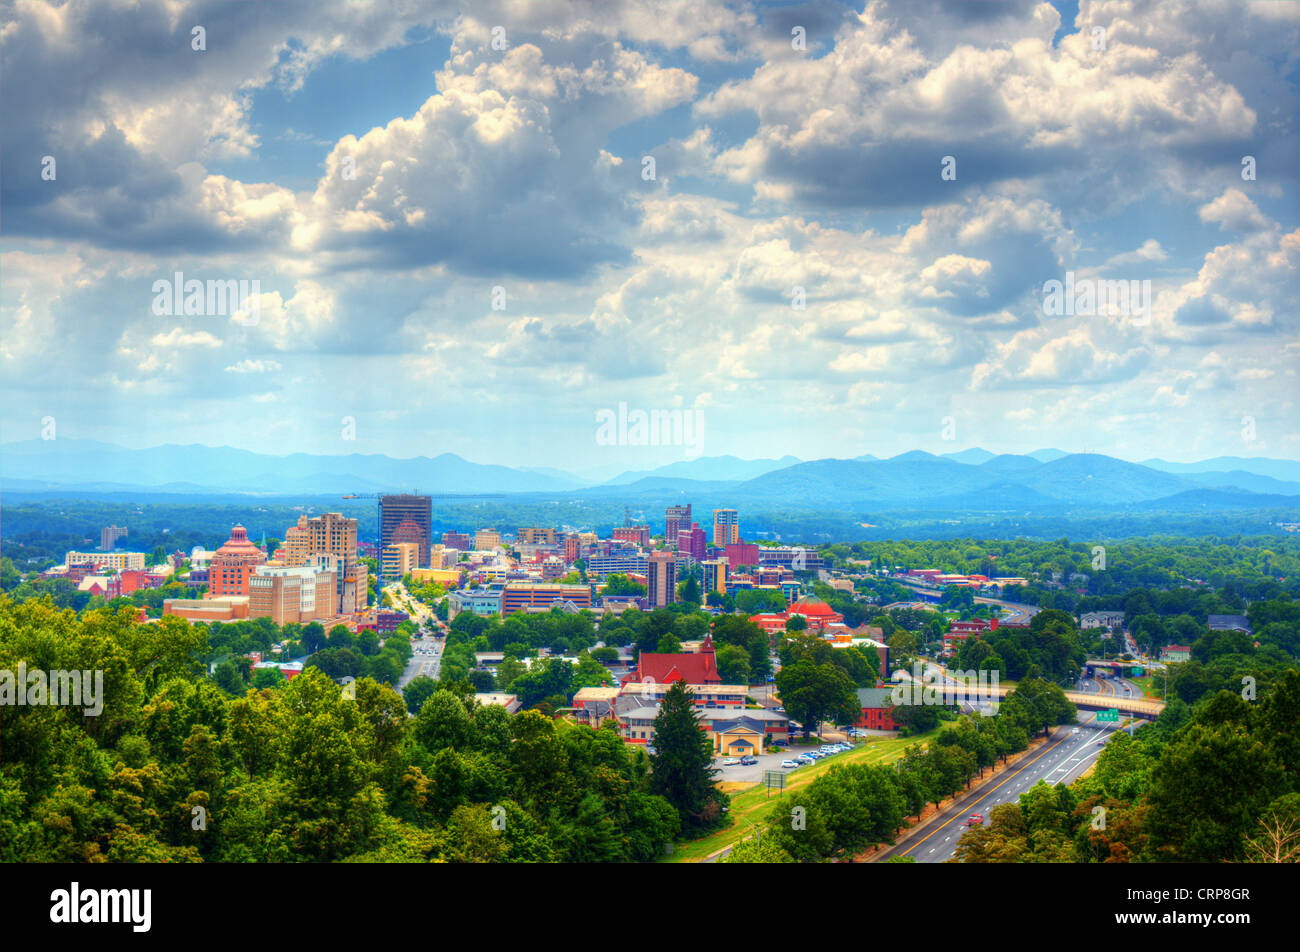 Asheville, North Carolina skyline nestled in the Blue Ridge Mountains. - Stock Image